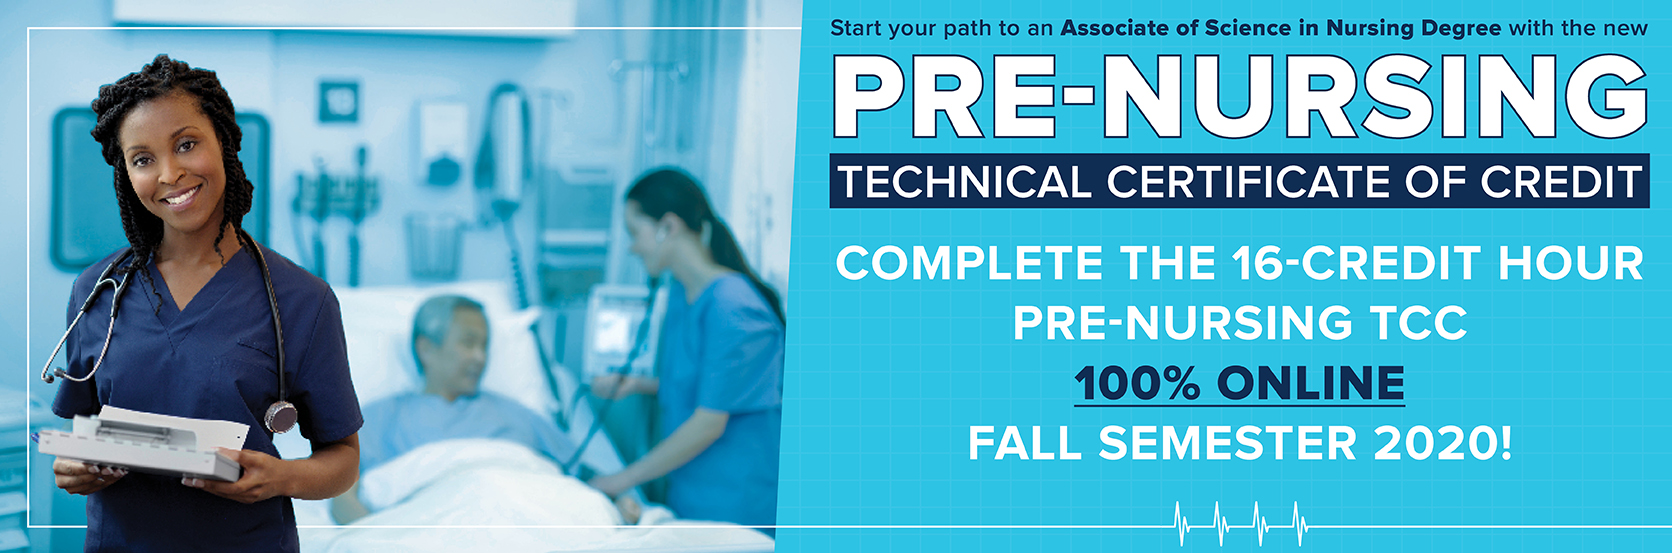 Enroll in the new Pre-Nursing TCC Today! Only 16 Credit Hours and 100% online for fall semester.